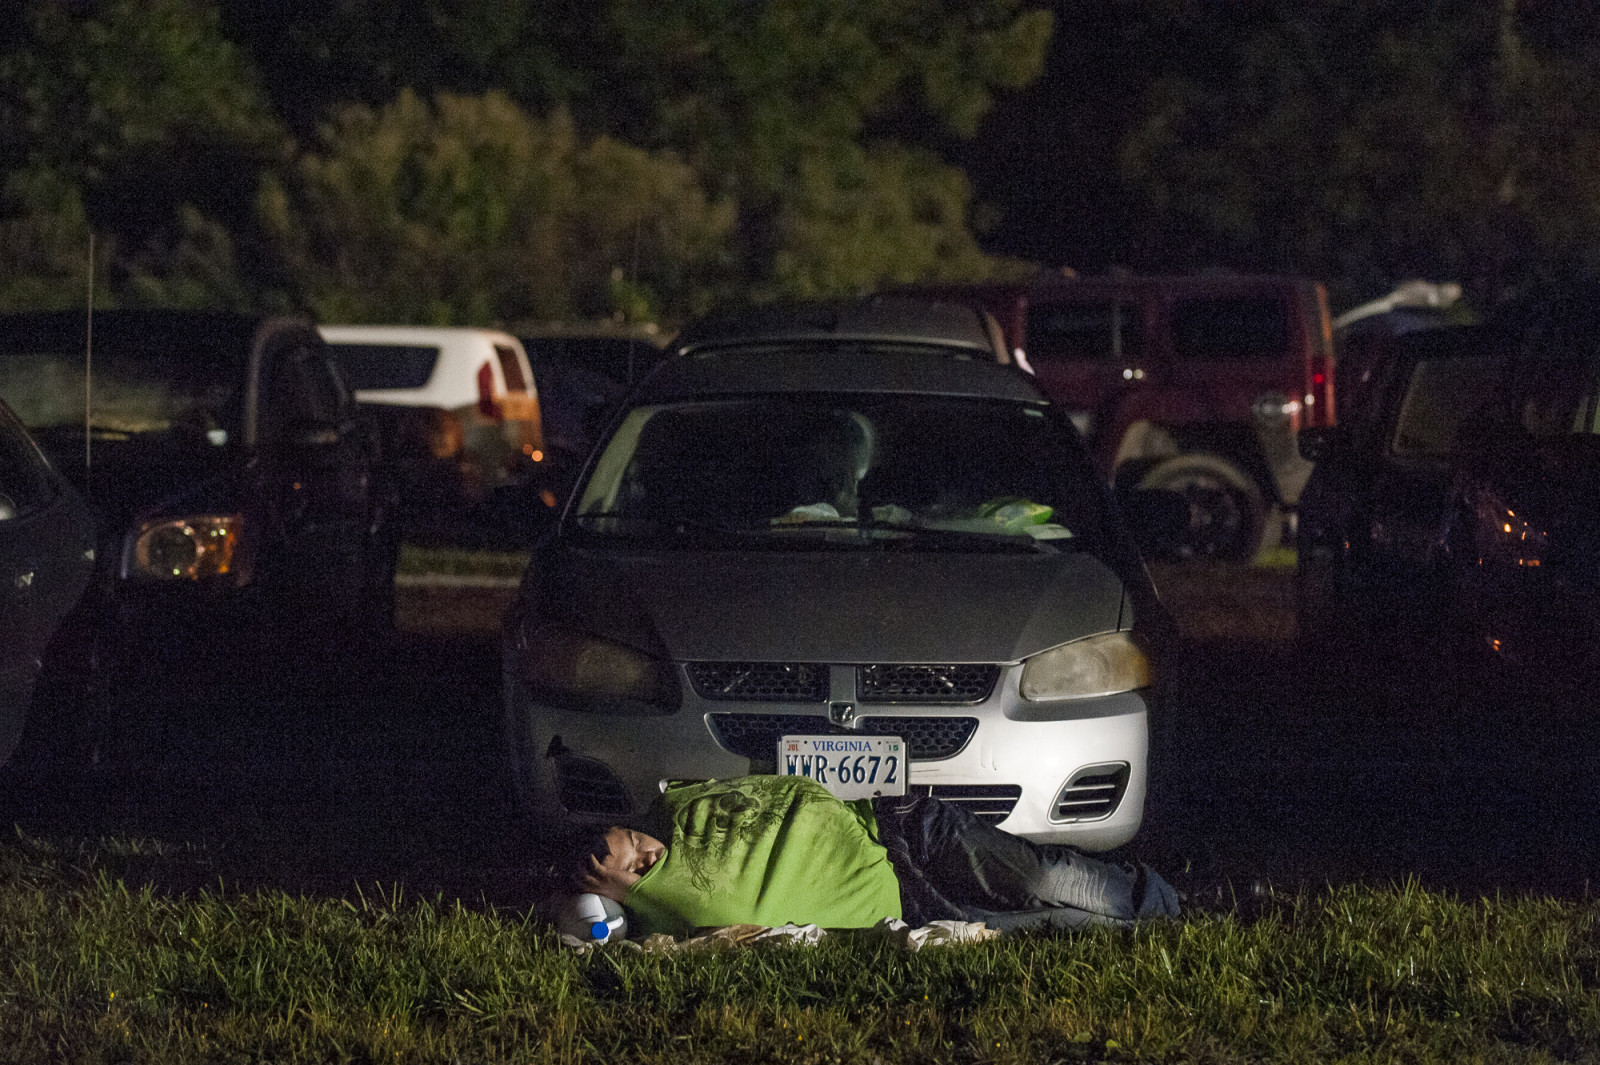 A man sleeps in front of his car in the parking lot at the Wise County Fairgrounds, where people hope to receive free medical care the next day at the 16th annual Remote Area Medical (RAM), clinic in Wise, Virginia, U.S., in the early morning on Friday, July 17, 2015. Photo: Pete Marovich/Bloomberg